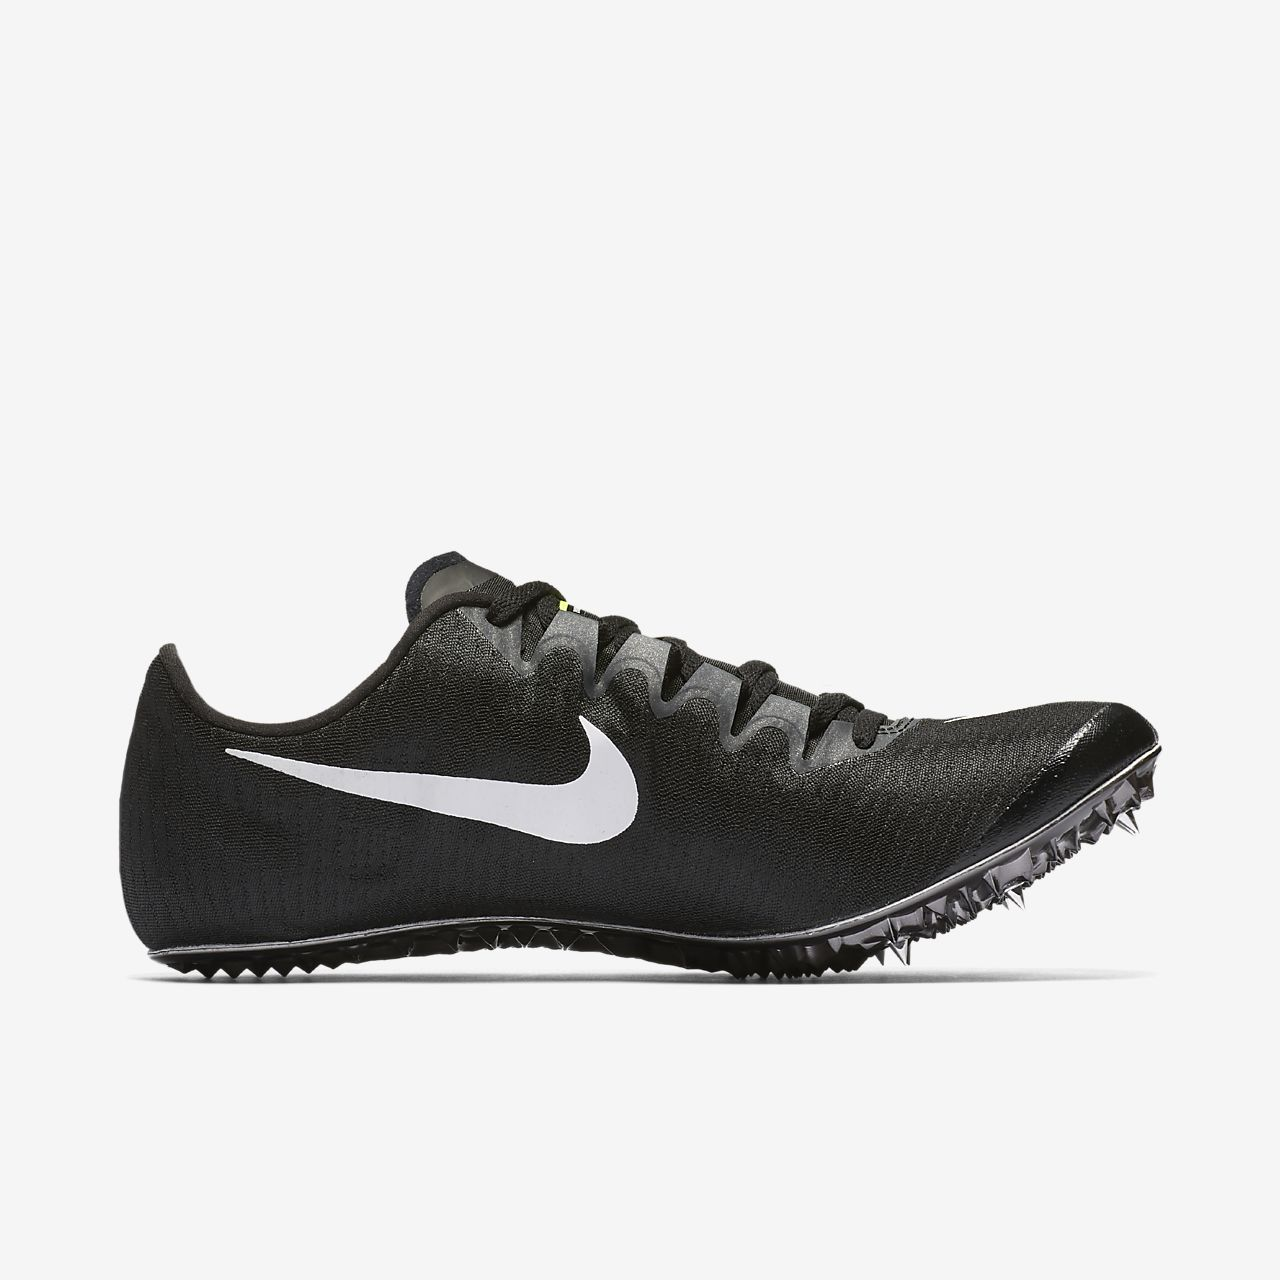 Nike Air Rival III, Zapatillas de Golf para Hombre, Blanco/Negro/Plateado (White/Black-Iron Ore), 46 EU